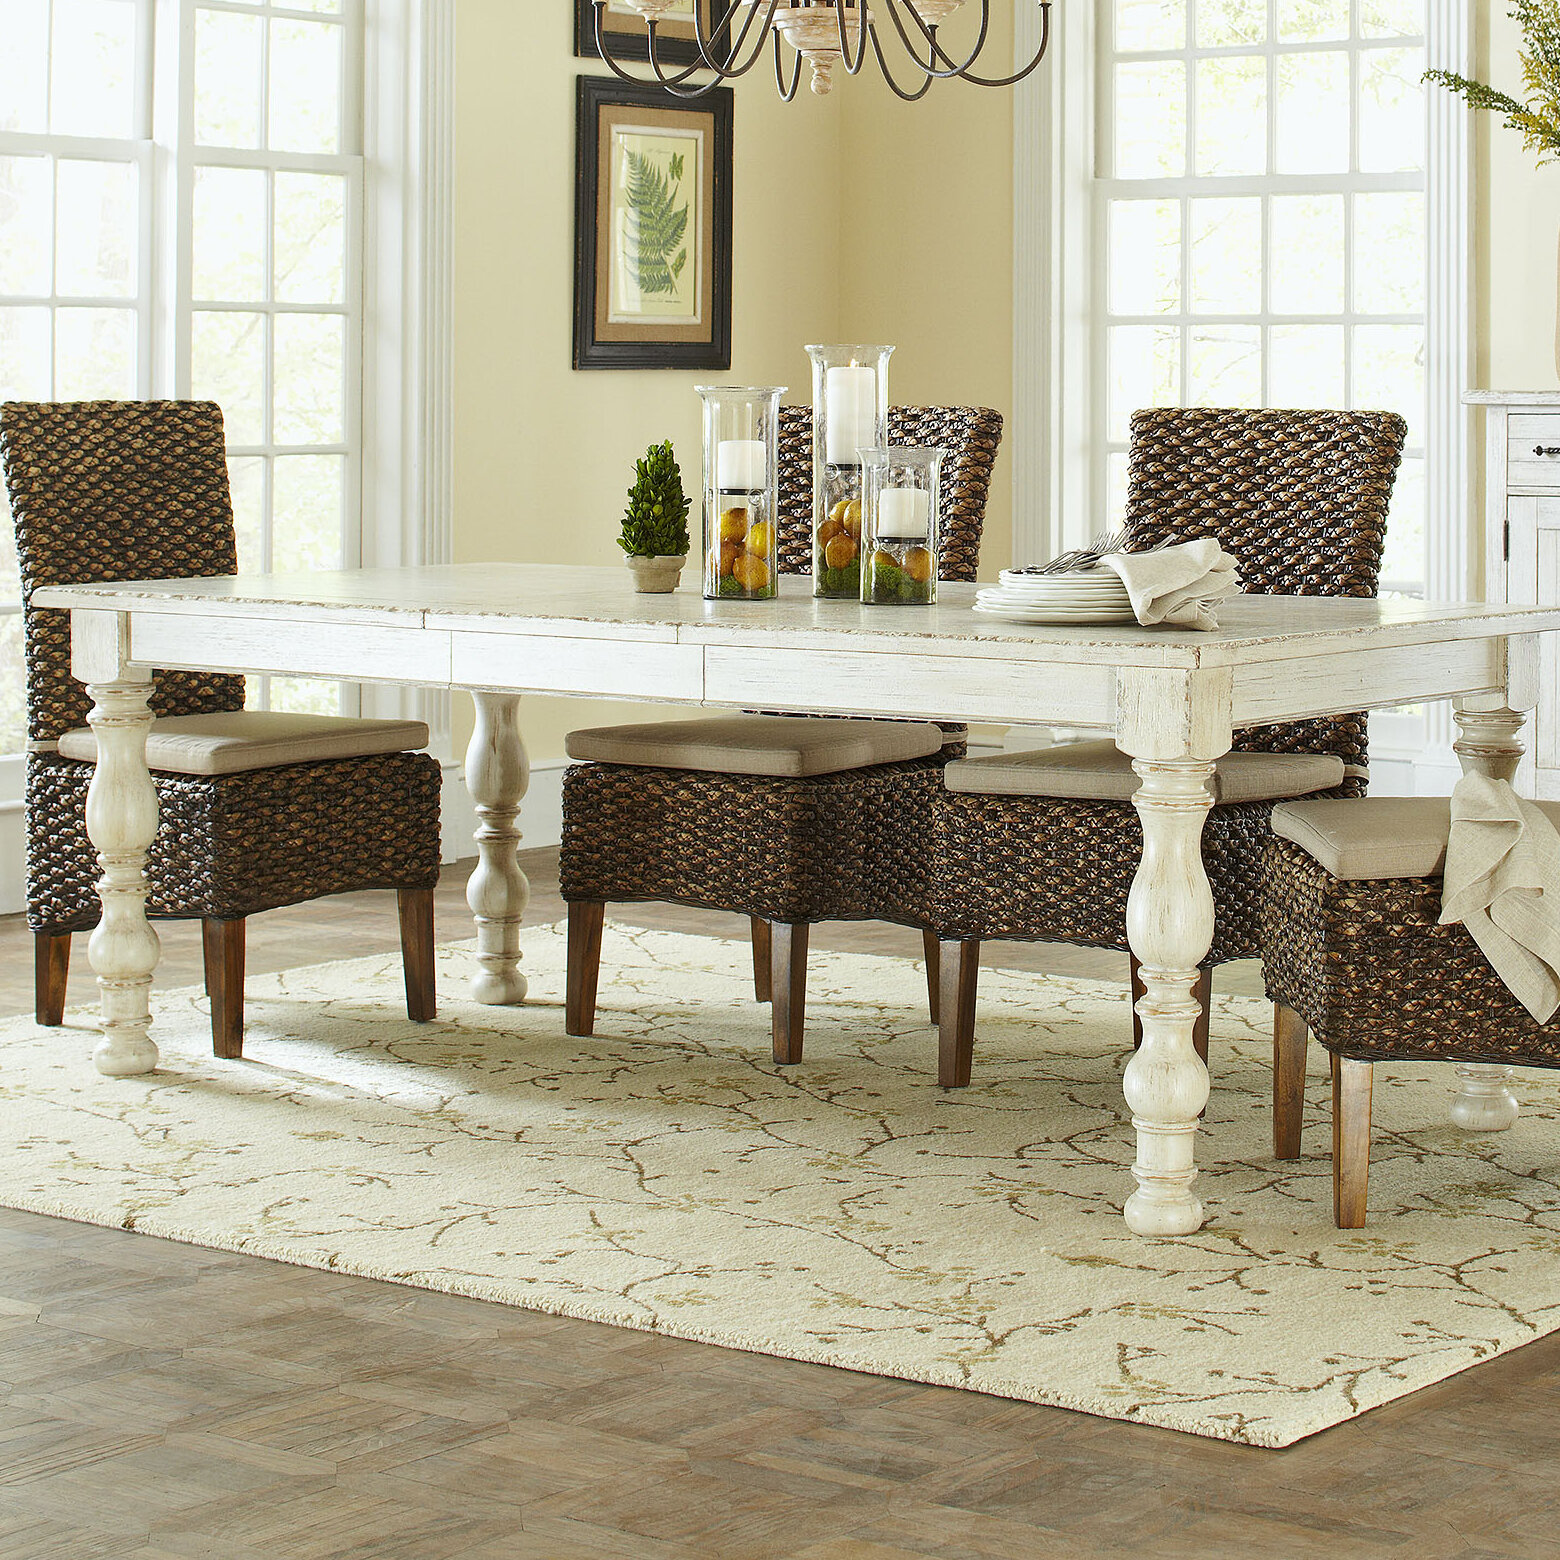 Birch LaneTM Heritage Artur Extending Dining Table Reviews